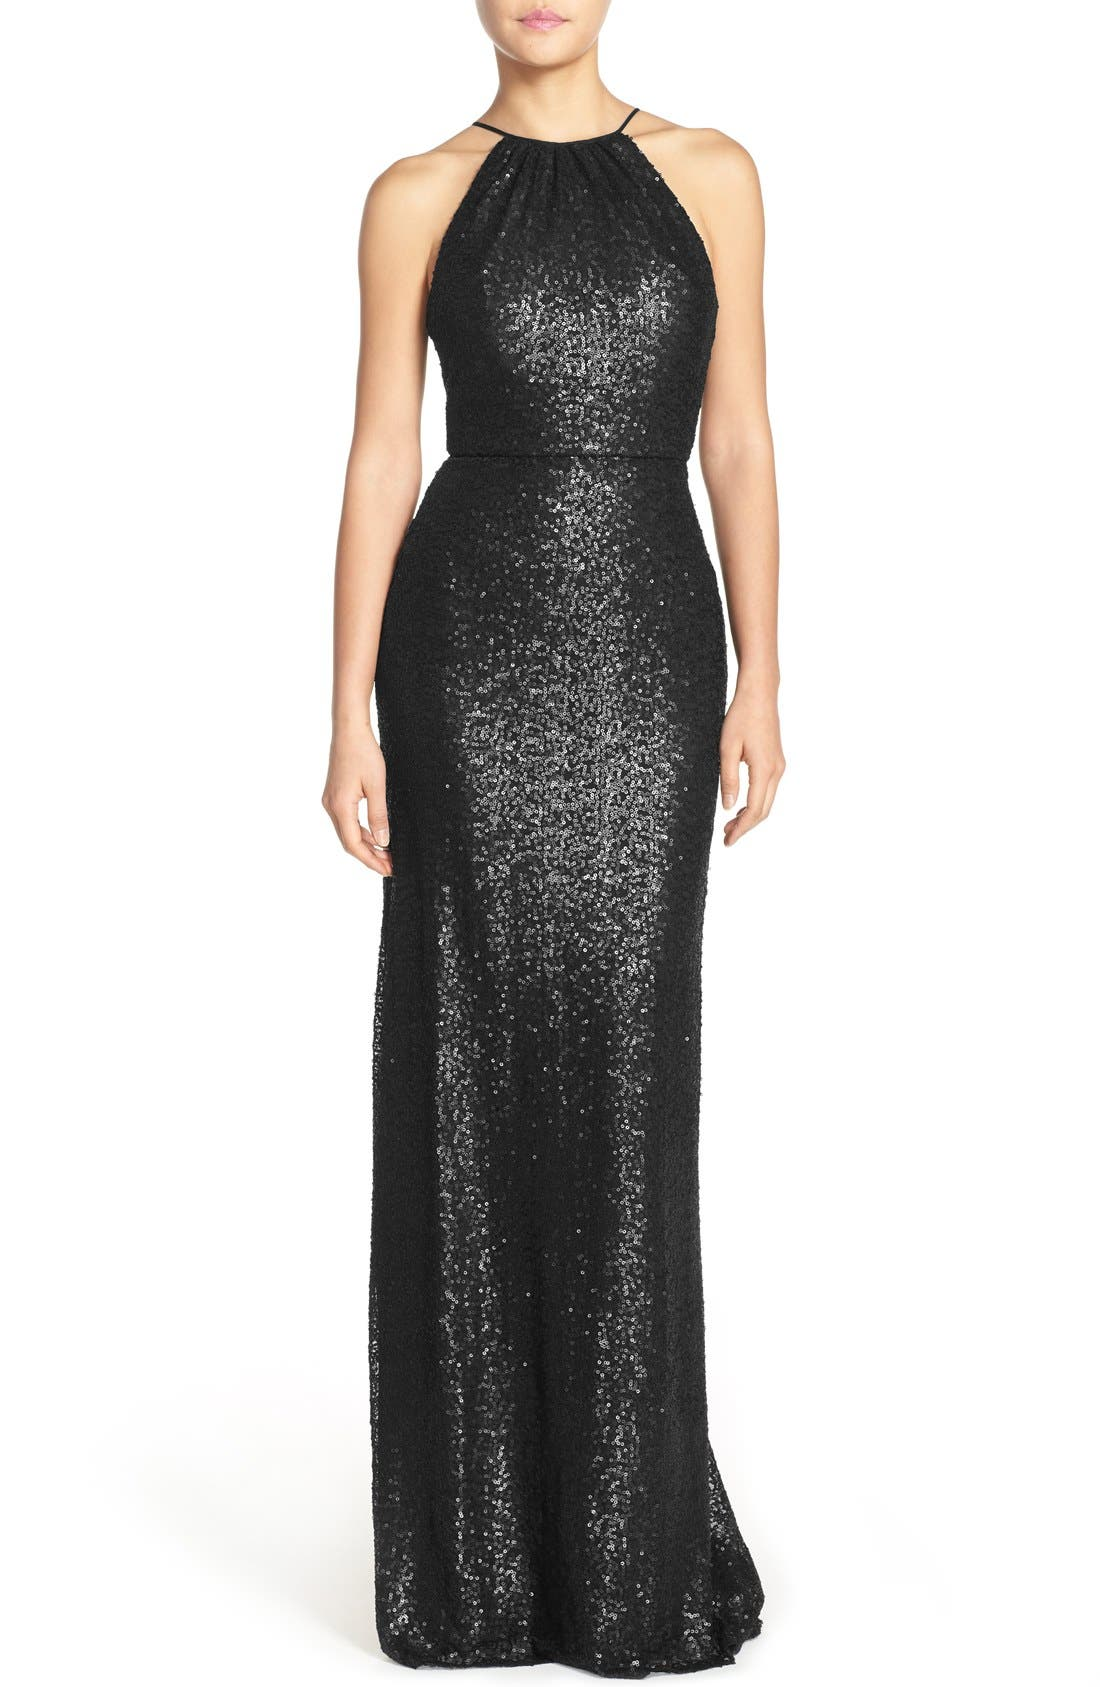 AMSALE, 'Chandler' Sequin Tulle Halter Style Gown, Main thumbnail 1, color, 001